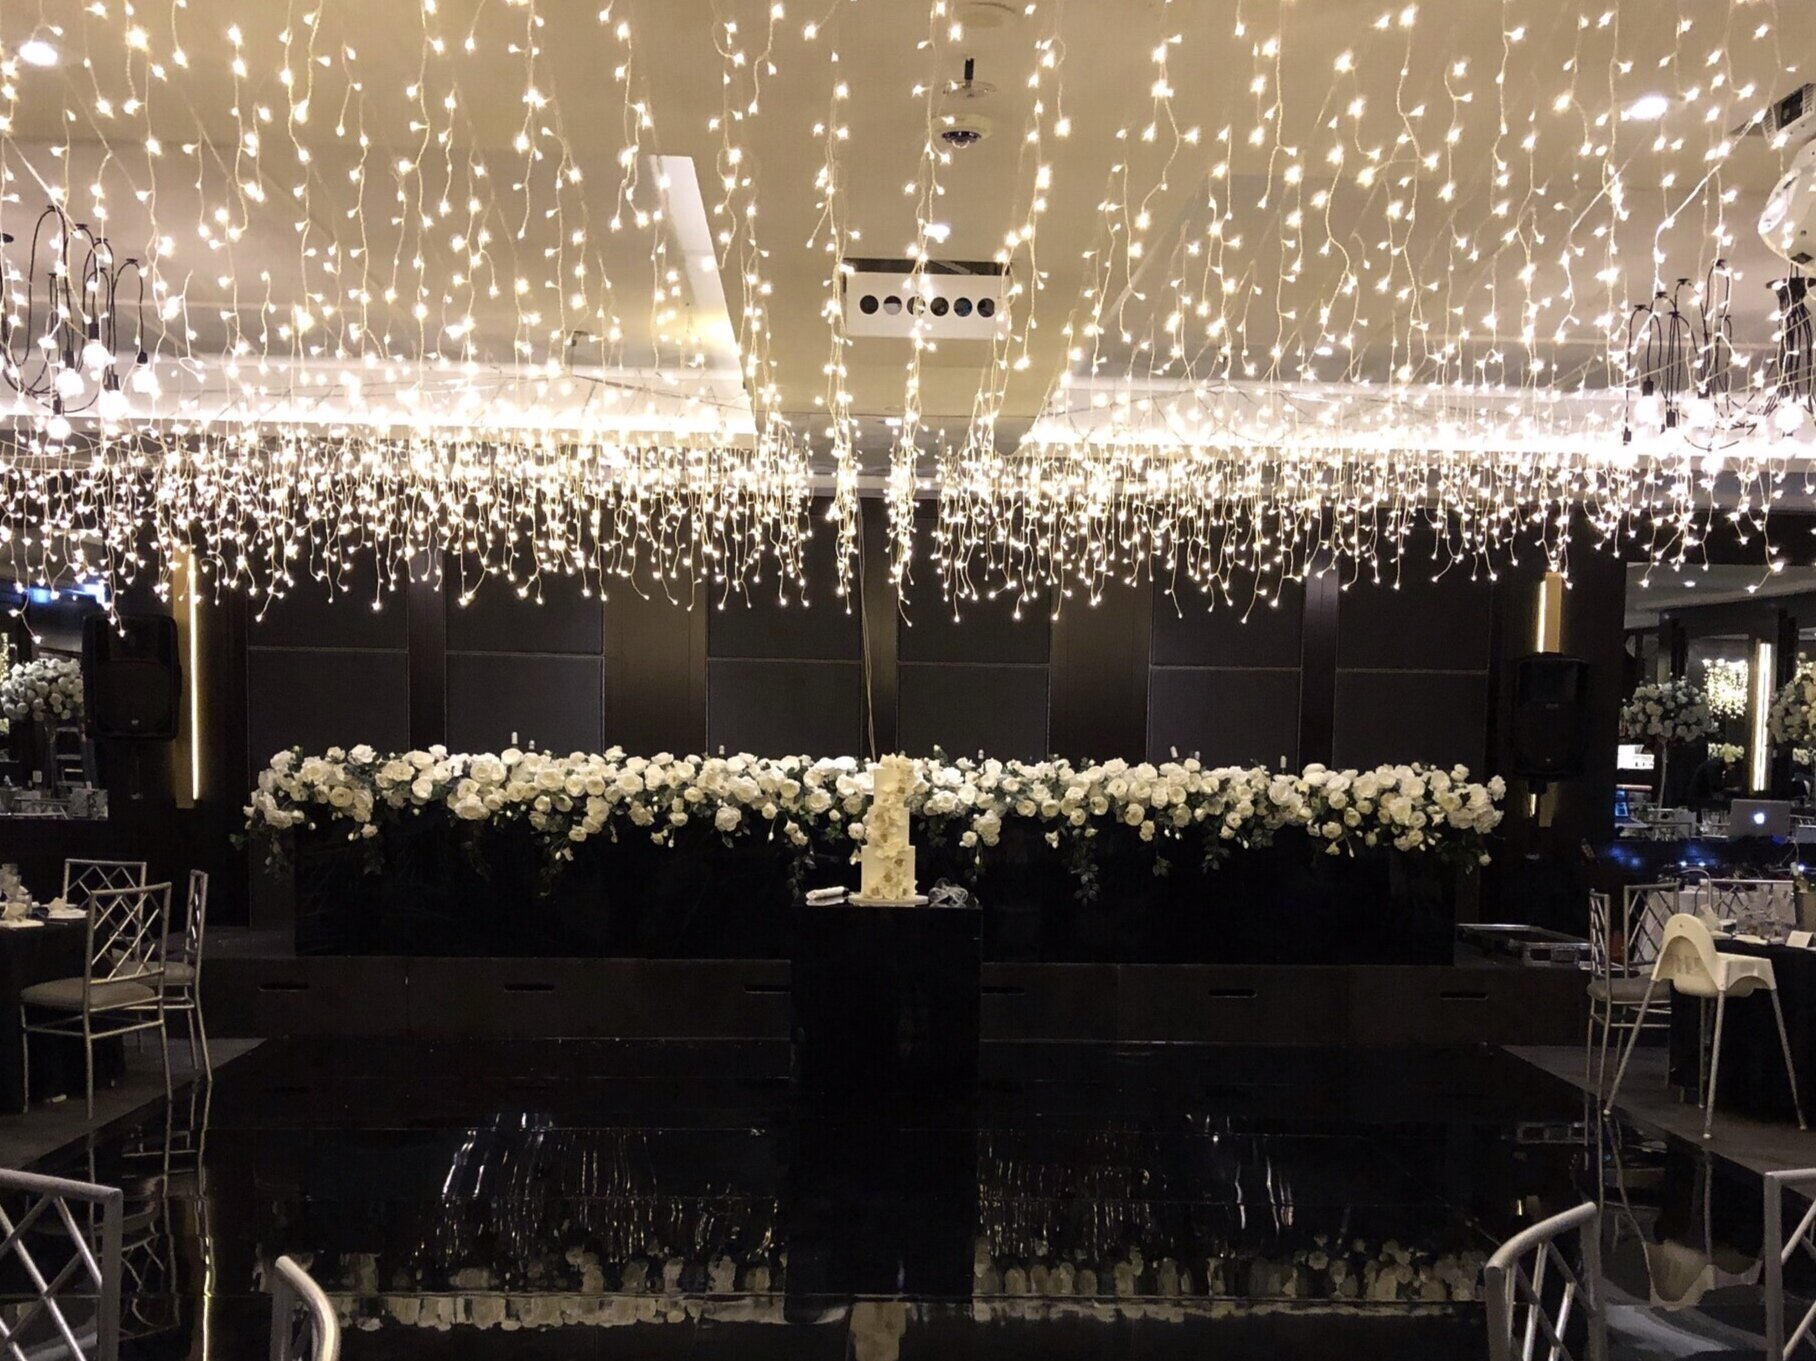 Icicle dance floor ceiling canopy by Fairytale Events - LeMontage The Gallery